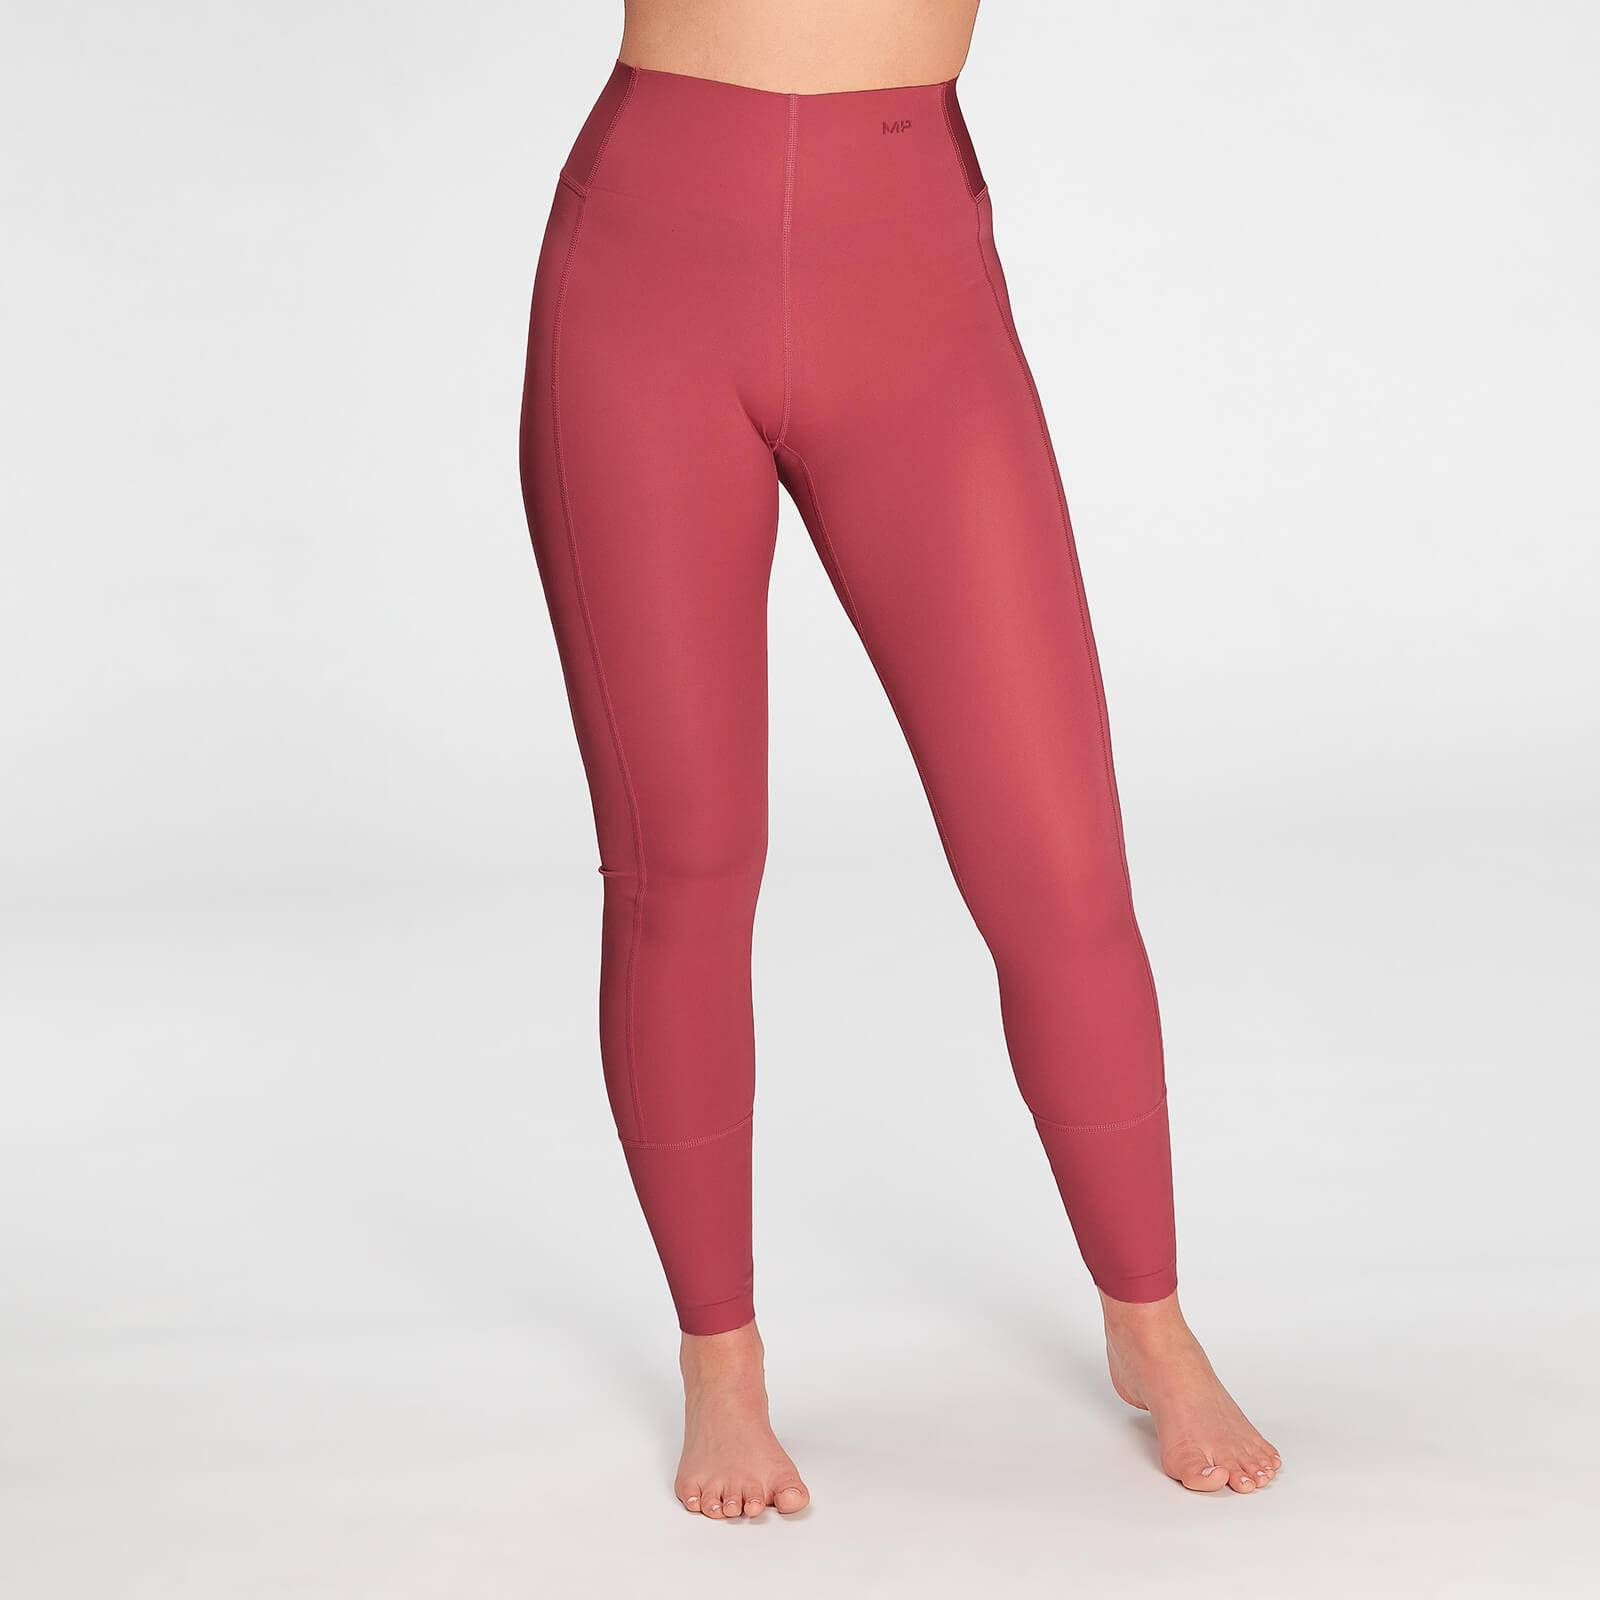 Mp Women's Coosure Leggings- Berry Pink - XXS